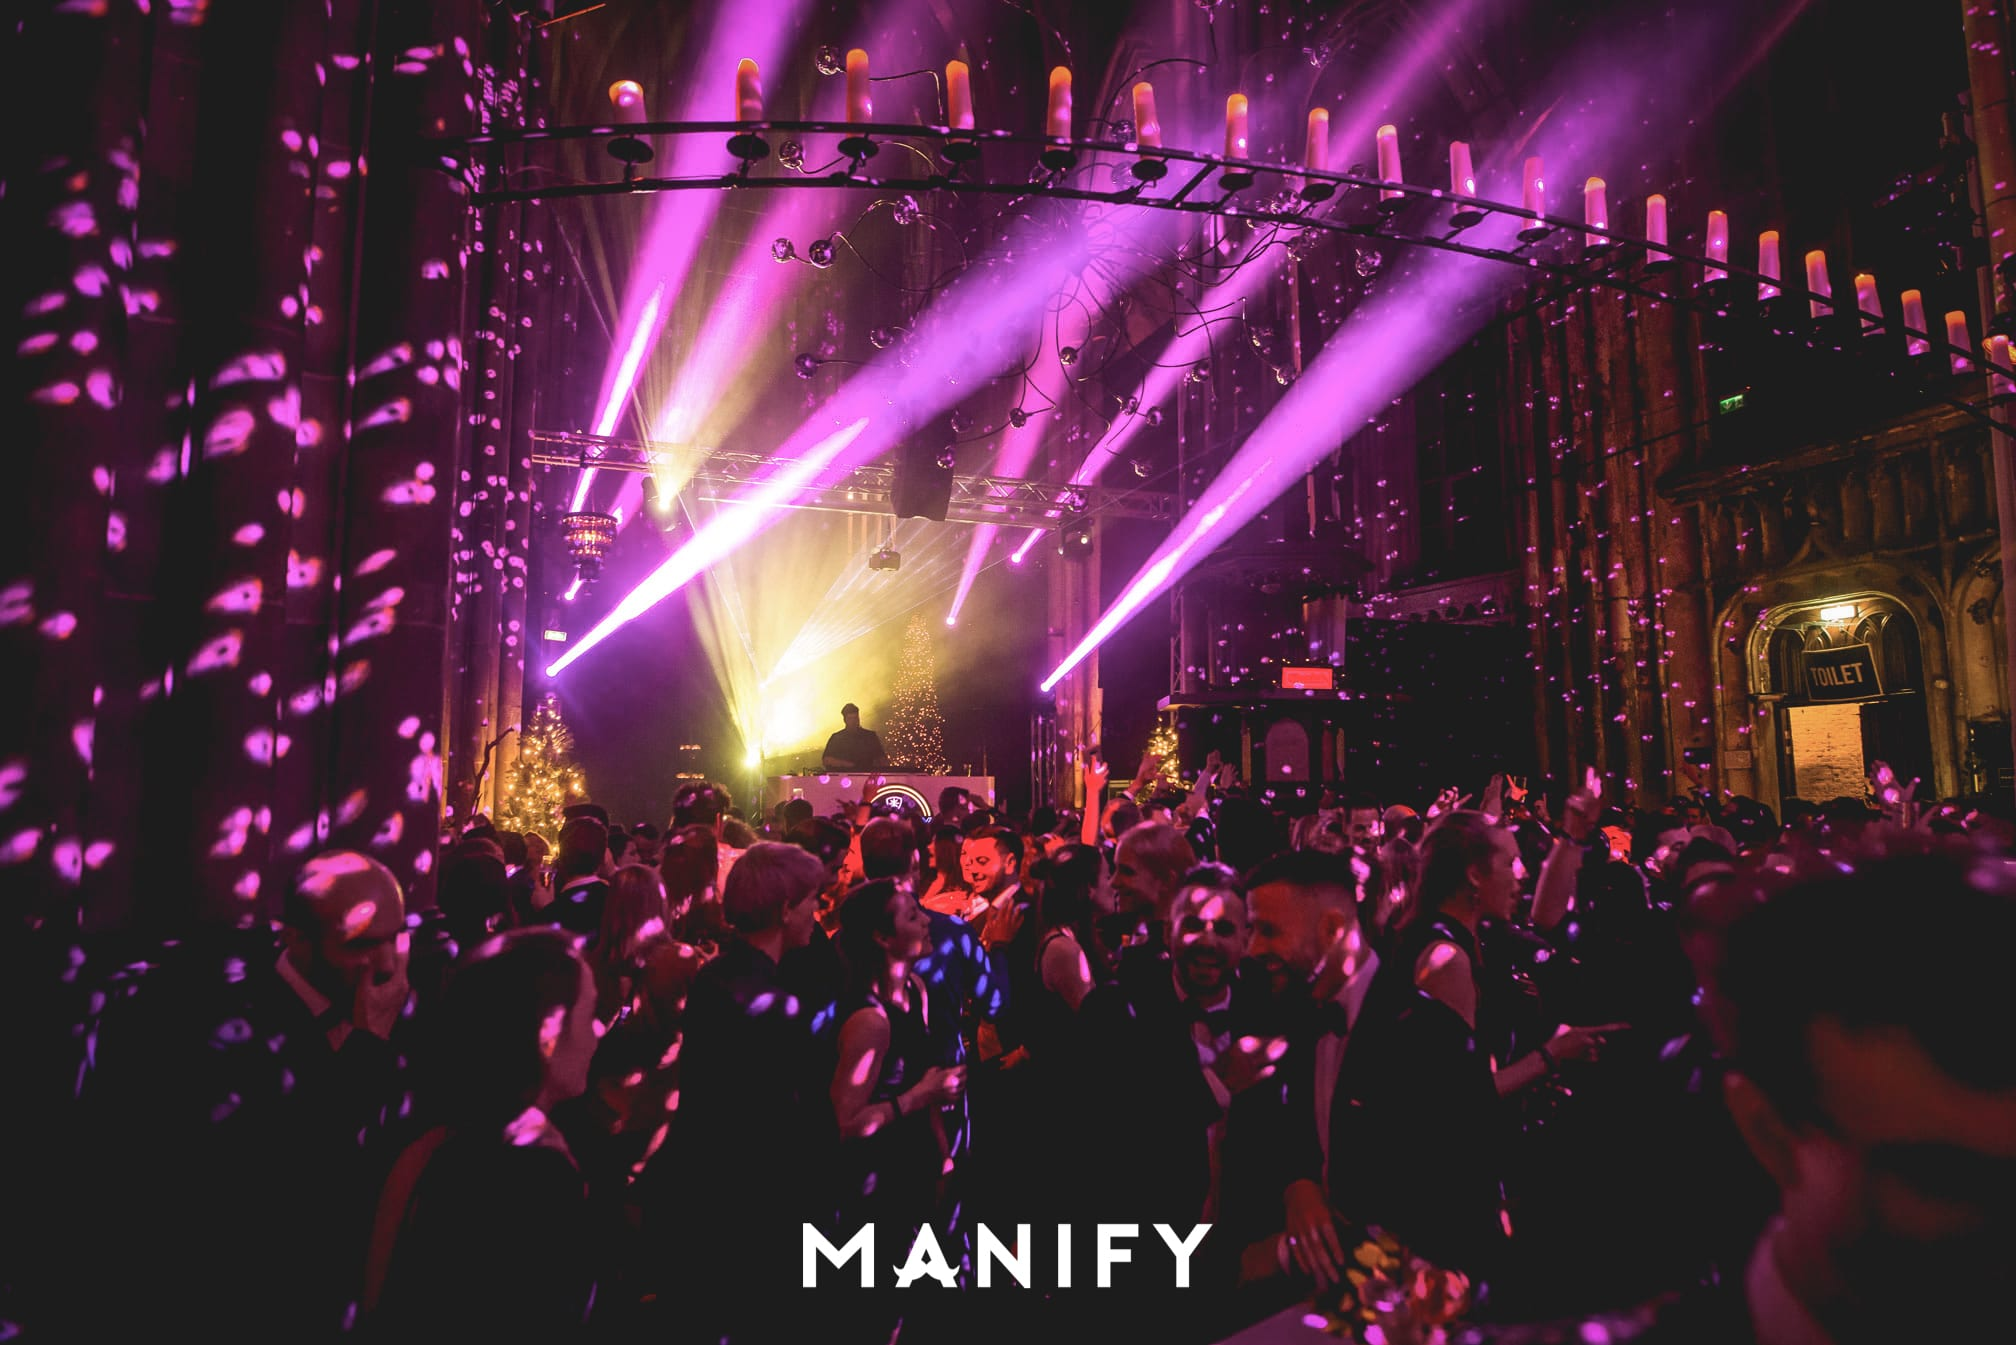 MANIFY_Out_of_office-Orangerie-06-12-19_WM-186-manify